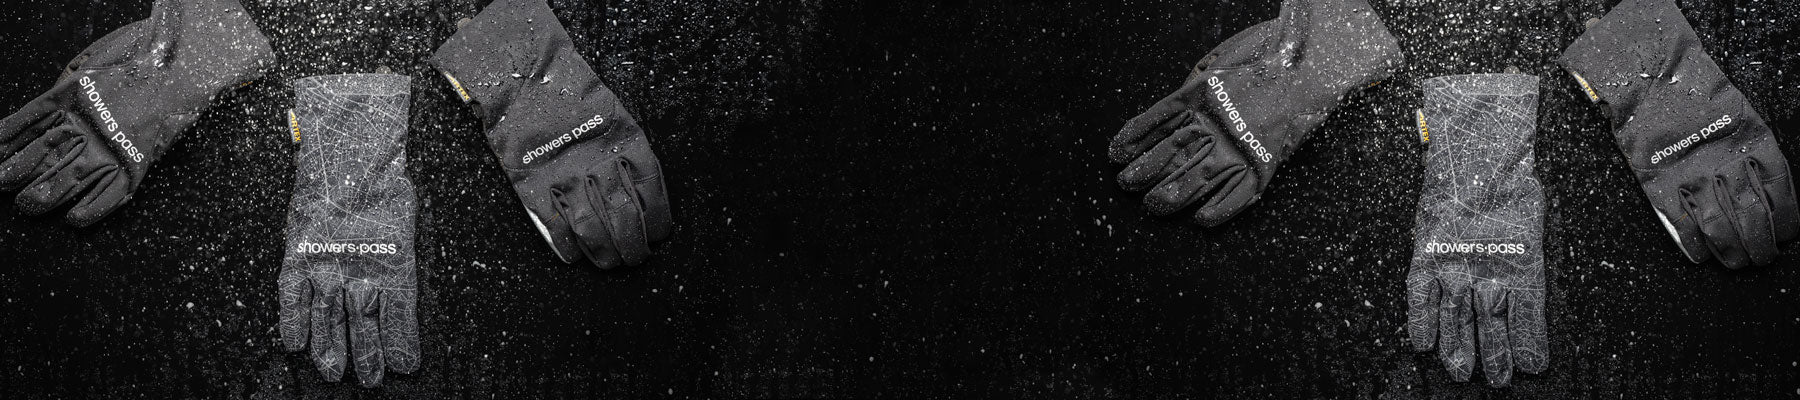 Men's Gloves & Face Coverings